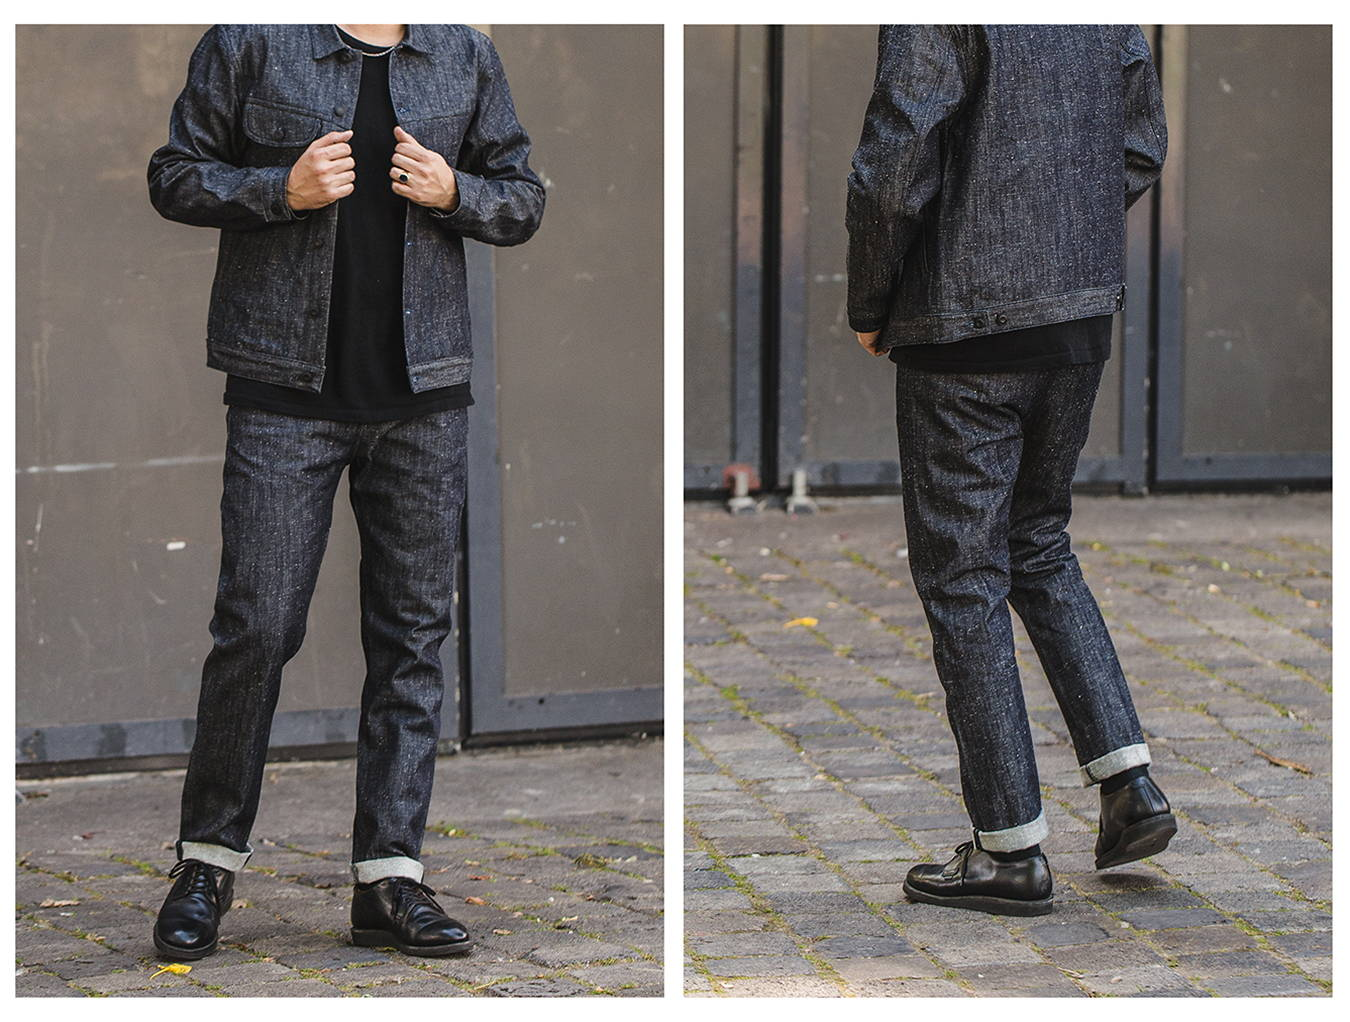 European made sustainable neppy denim jacket created by BENZAK. A lightweight sophisticated edition of the benzak bdj-02 rider jacket.